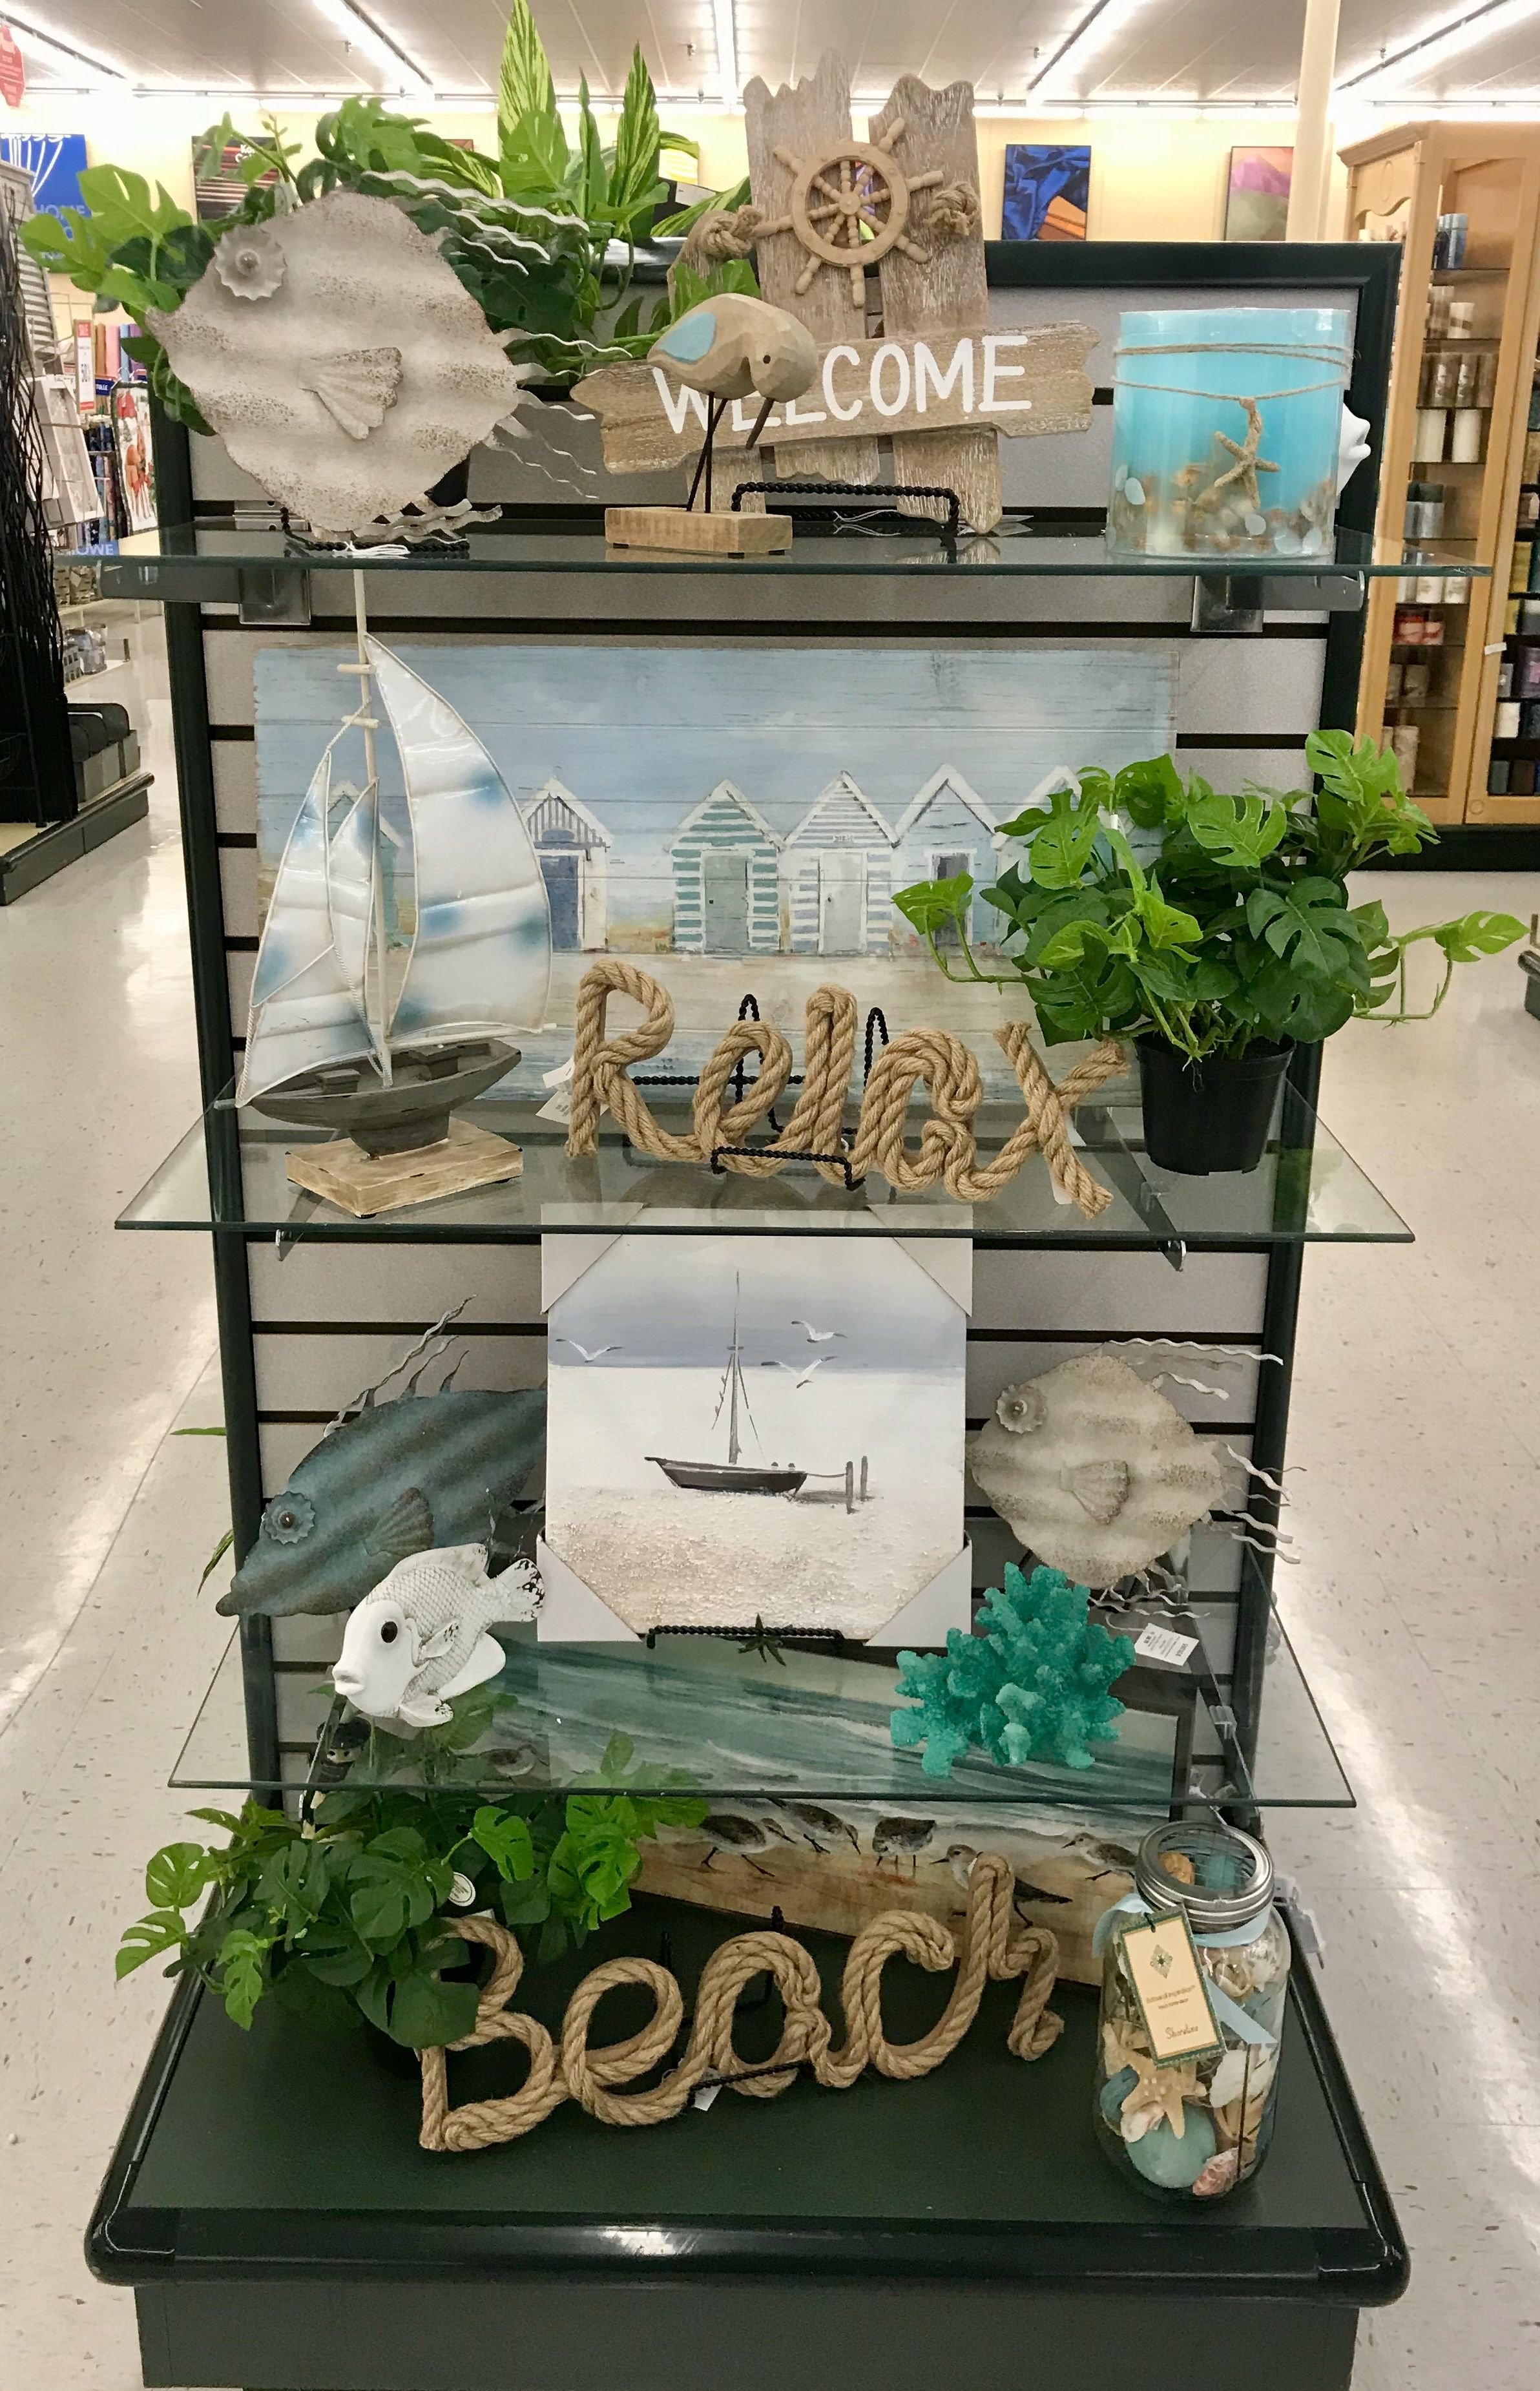 Hobby Lobby Merchandising Table Displays Work With Images